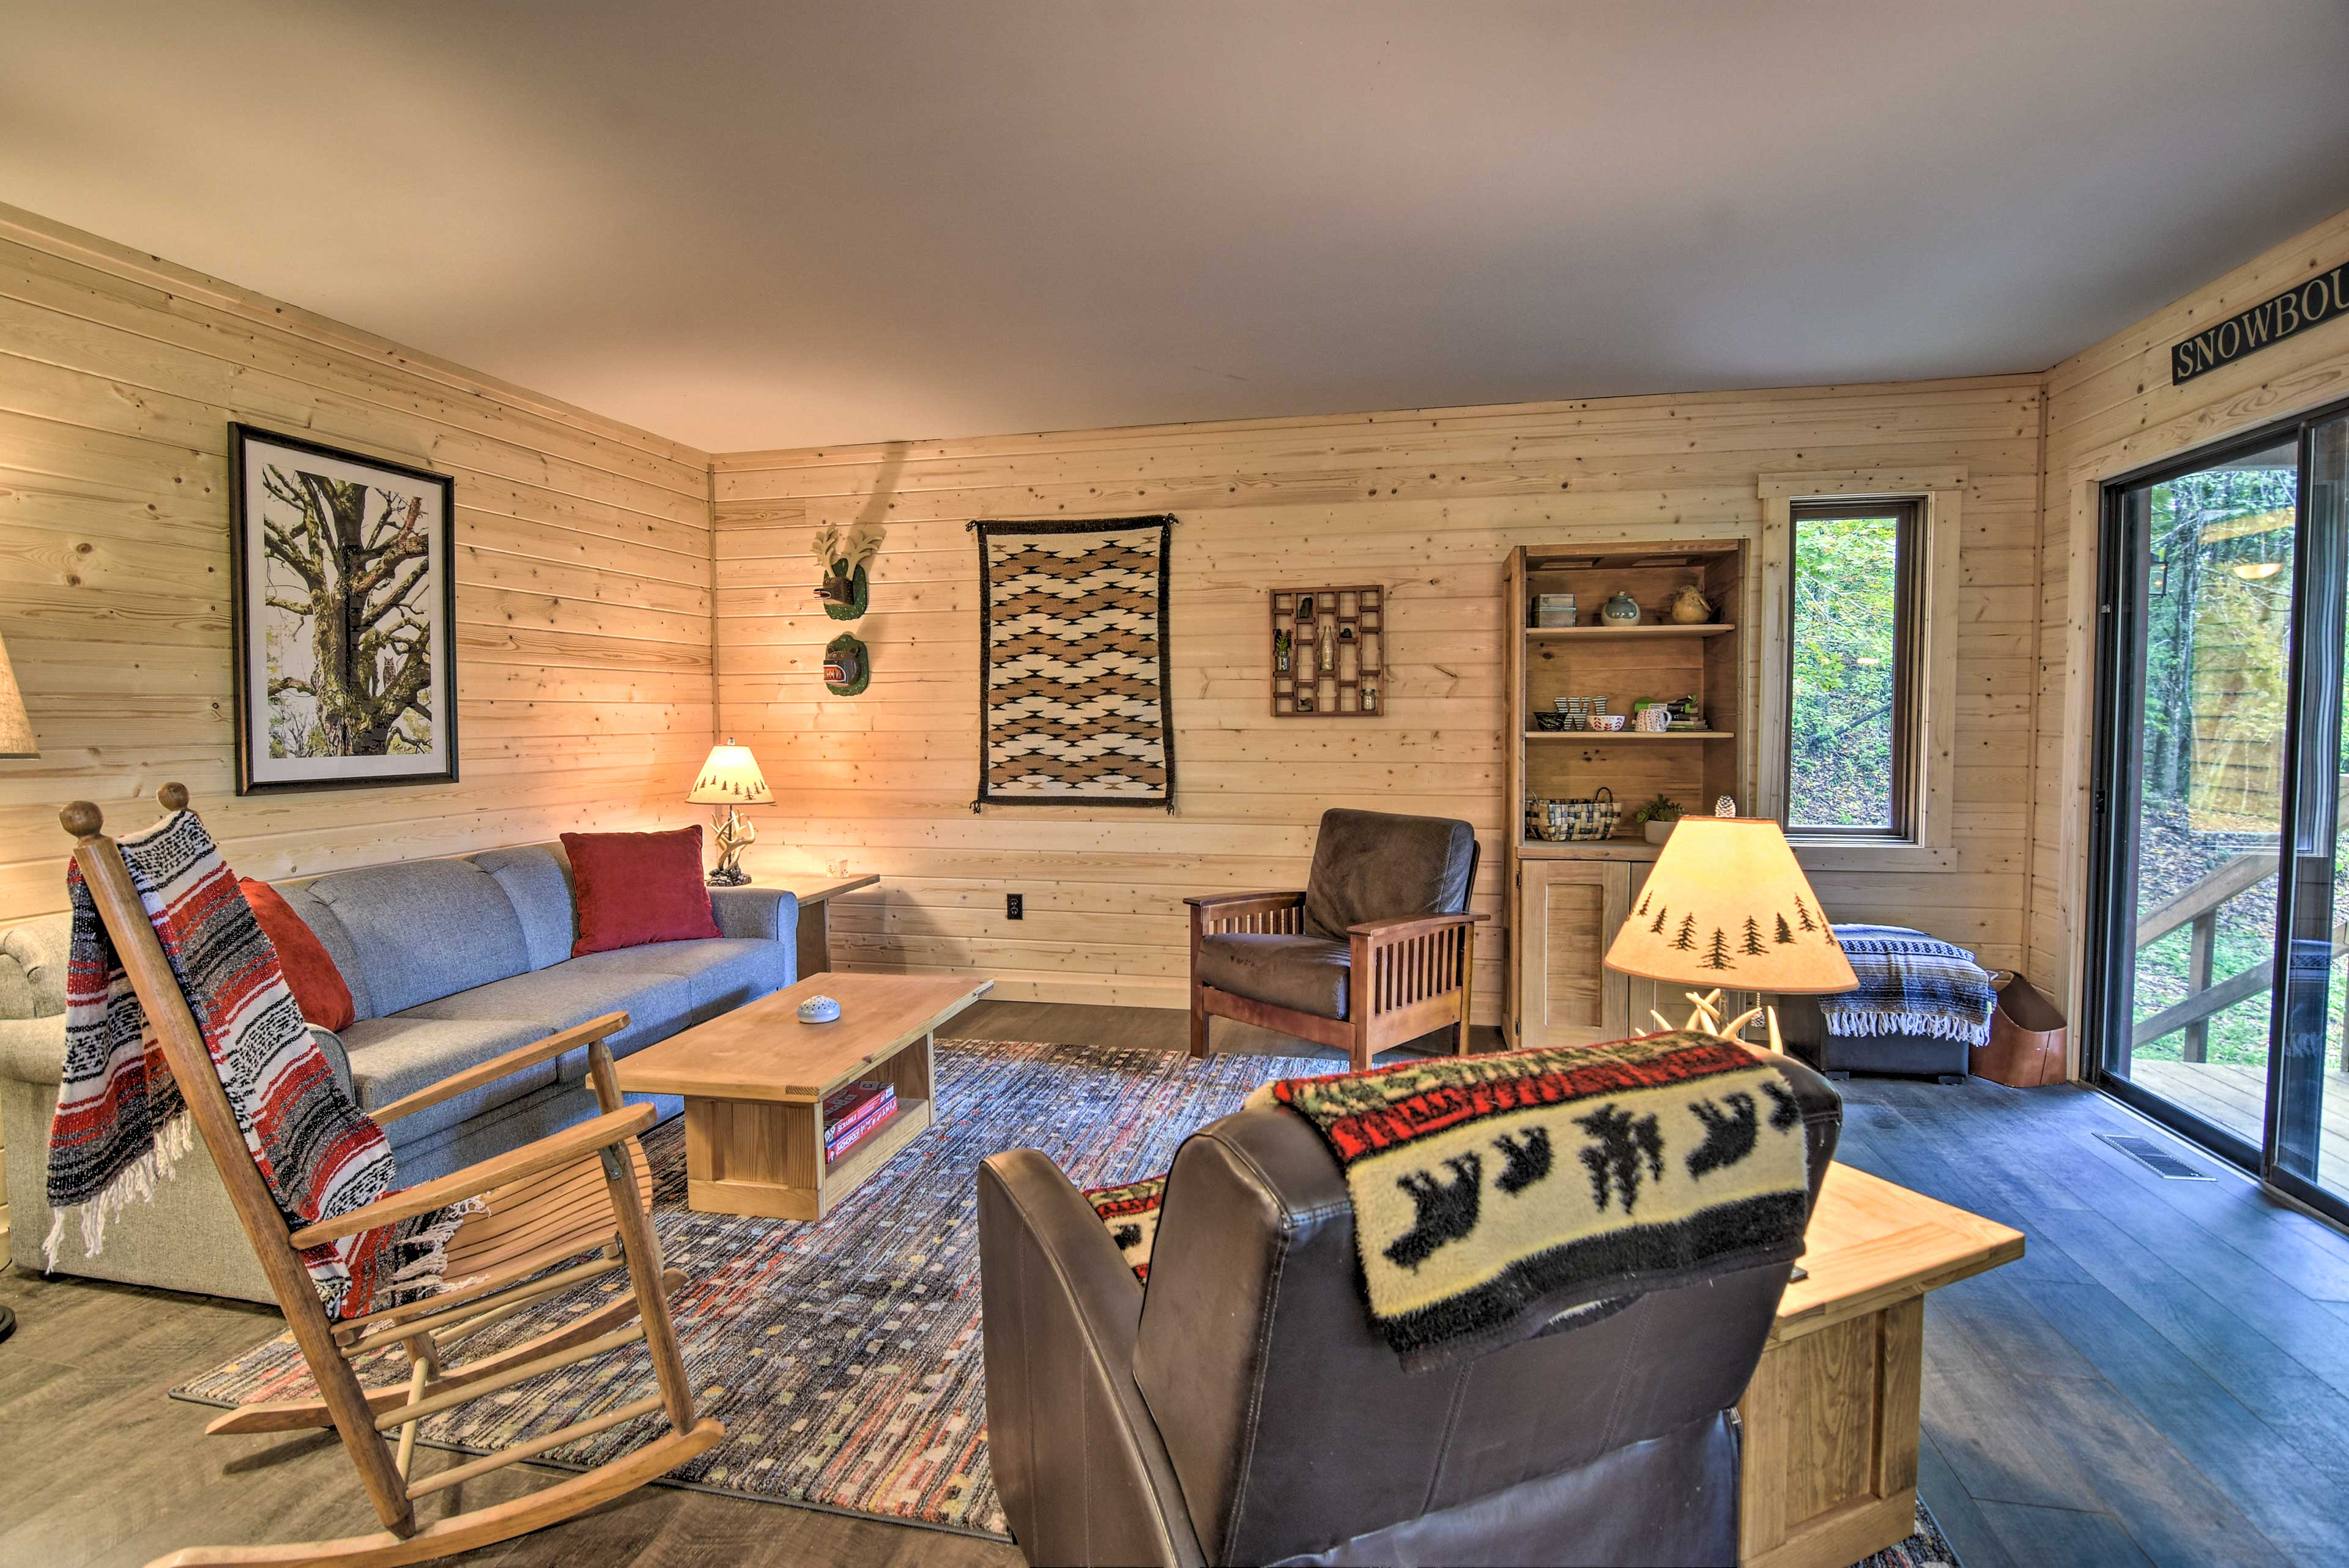 The 2-bed, 2-bath home features rustic cabin decor.